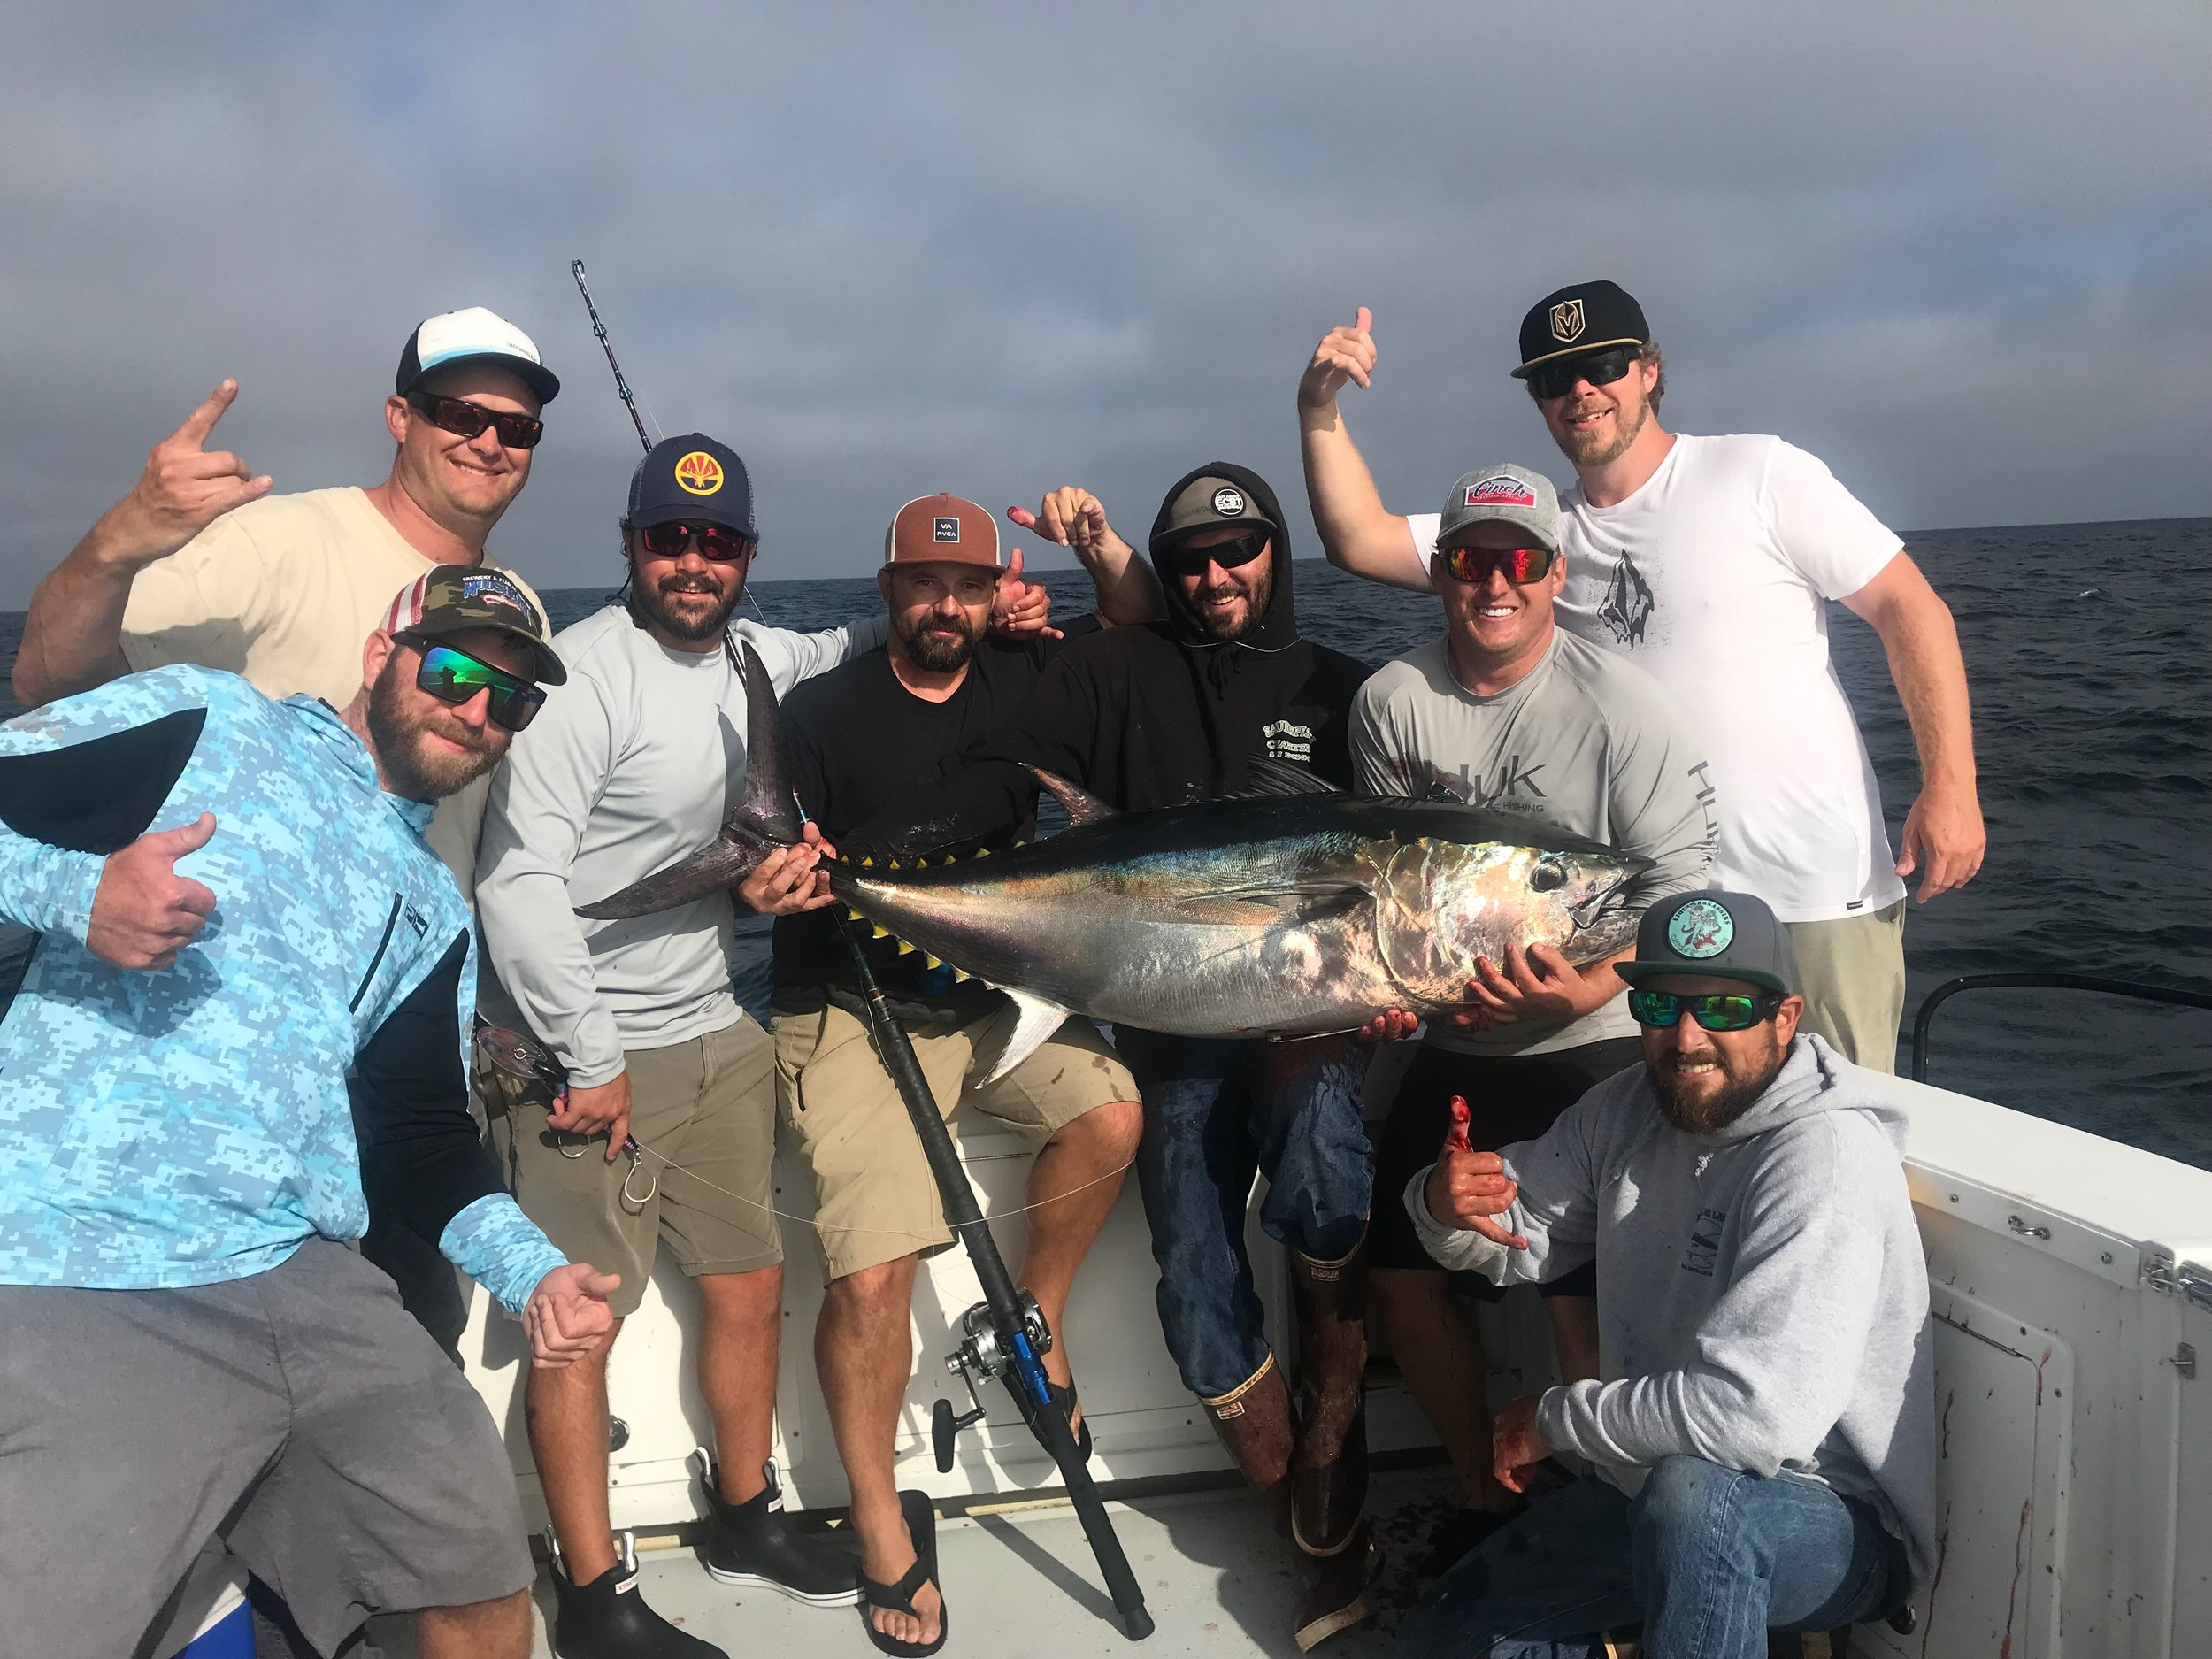 - August-31-2019Tough fishing on the Yellowfin Tuna, so we changed area codes and made it happen!